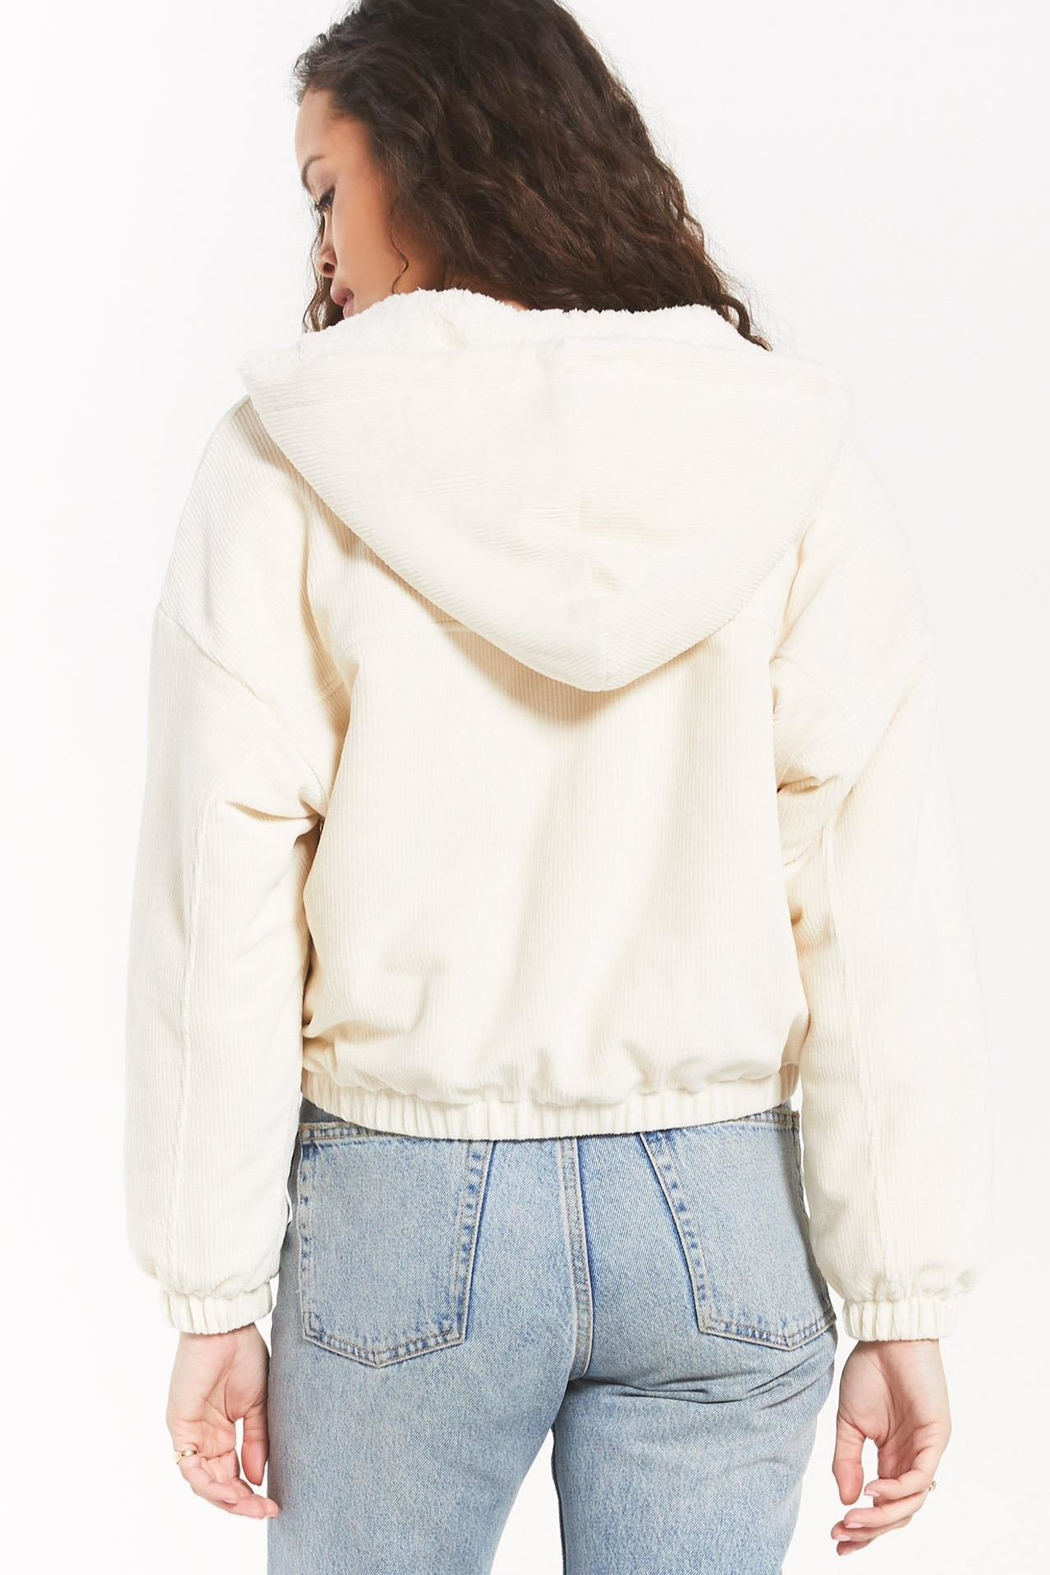 z supply Camille Cord Bomber - Side Cropped Image